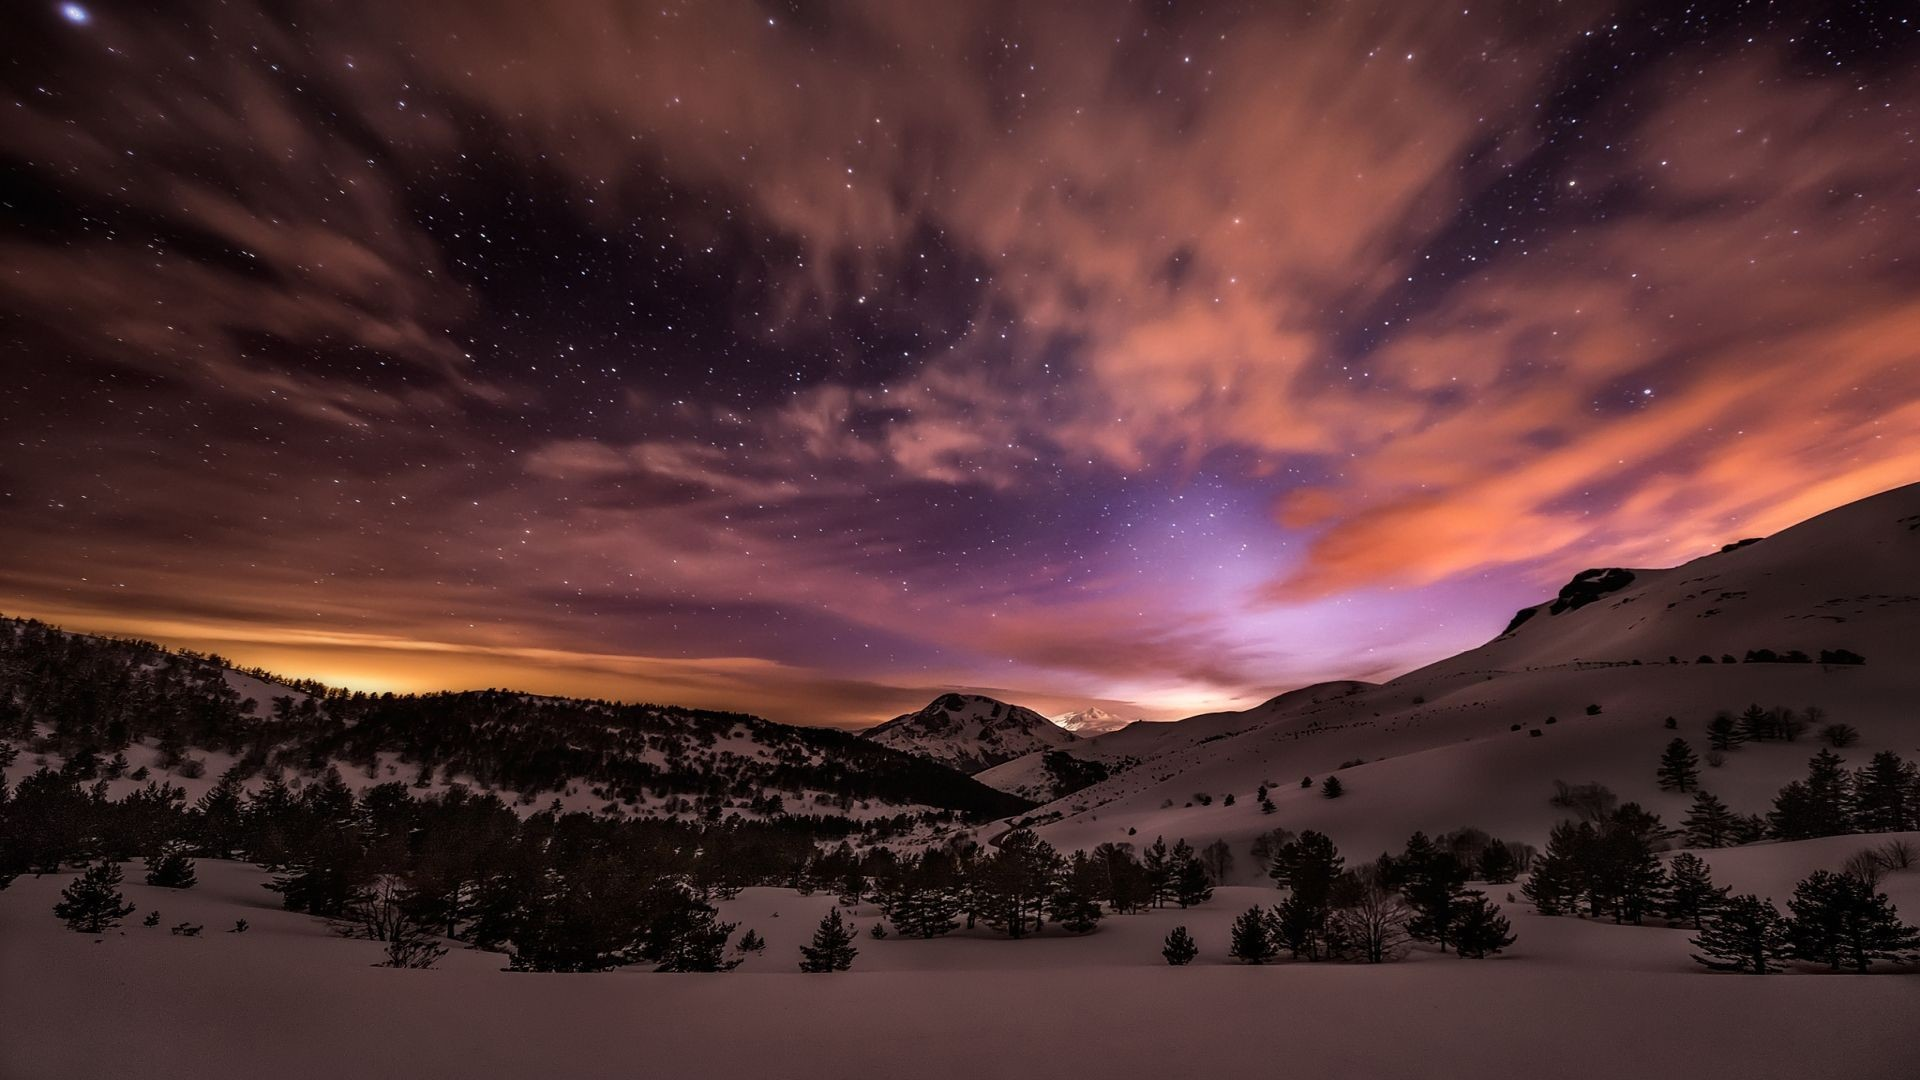 Fall Themed Iphone Wallpapers Winter Night Sky Wallpaper 64 Images